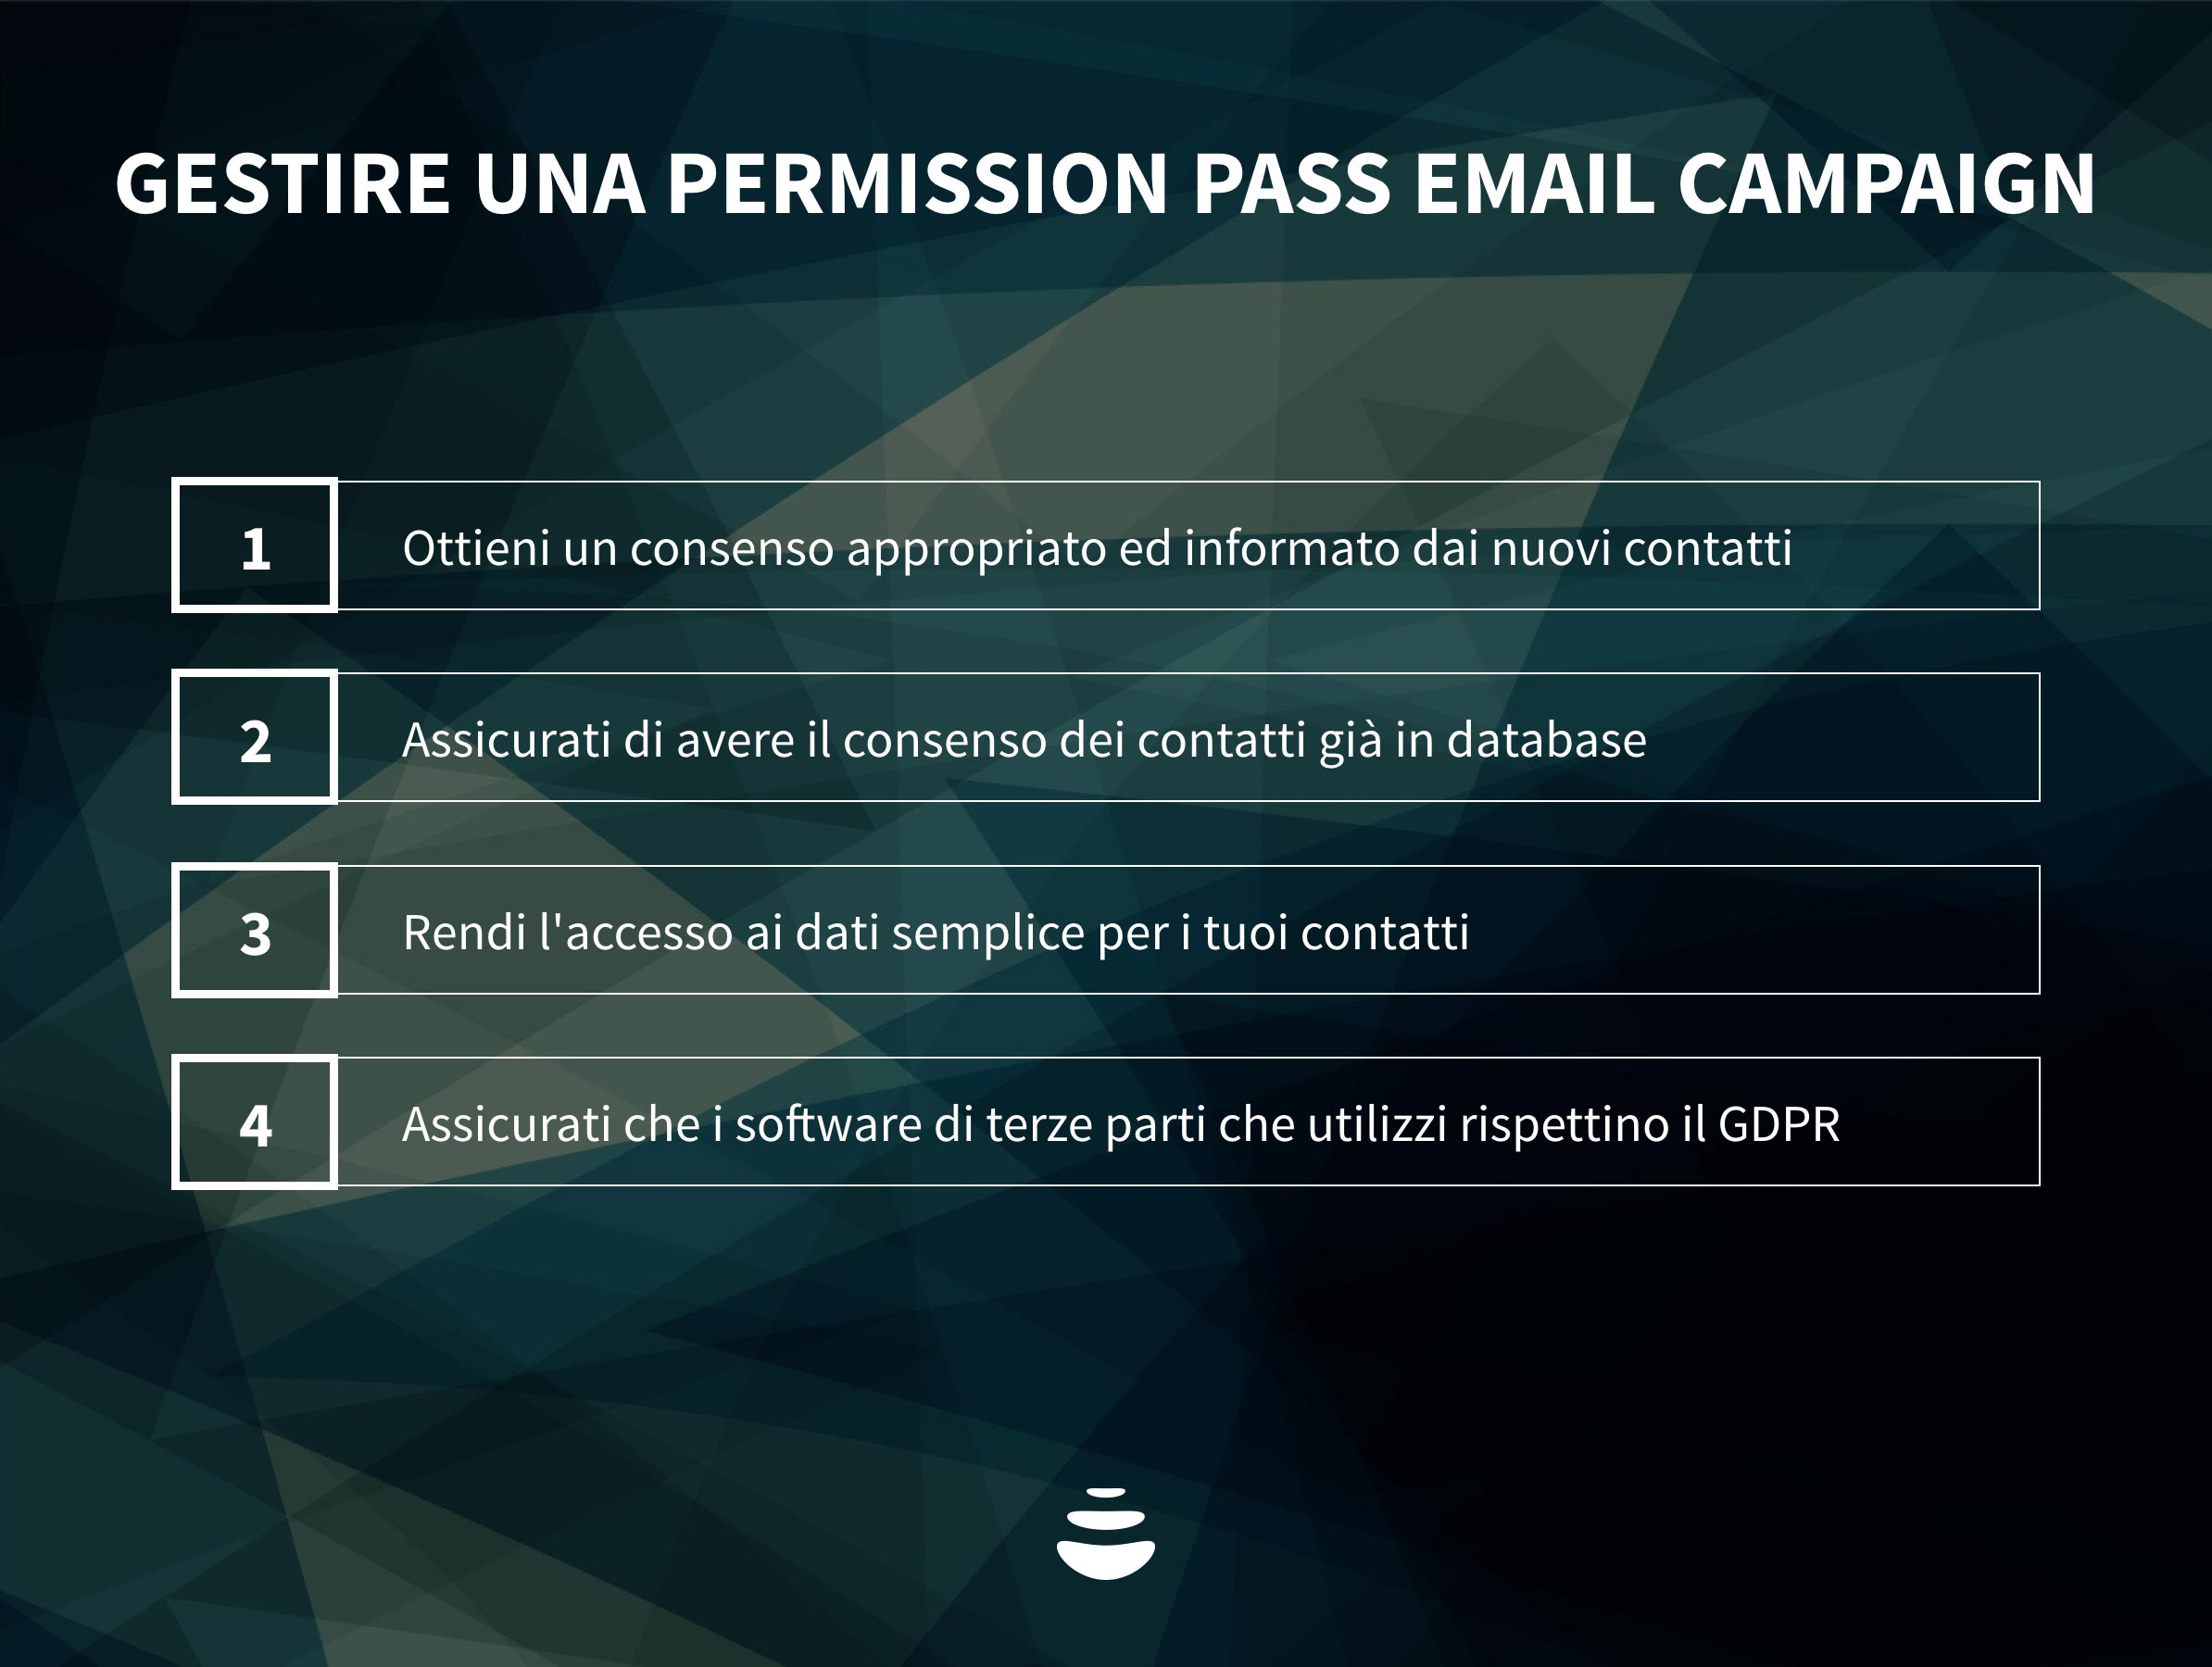 GDPR ed email marketing: come gestire una permission pass email campaign